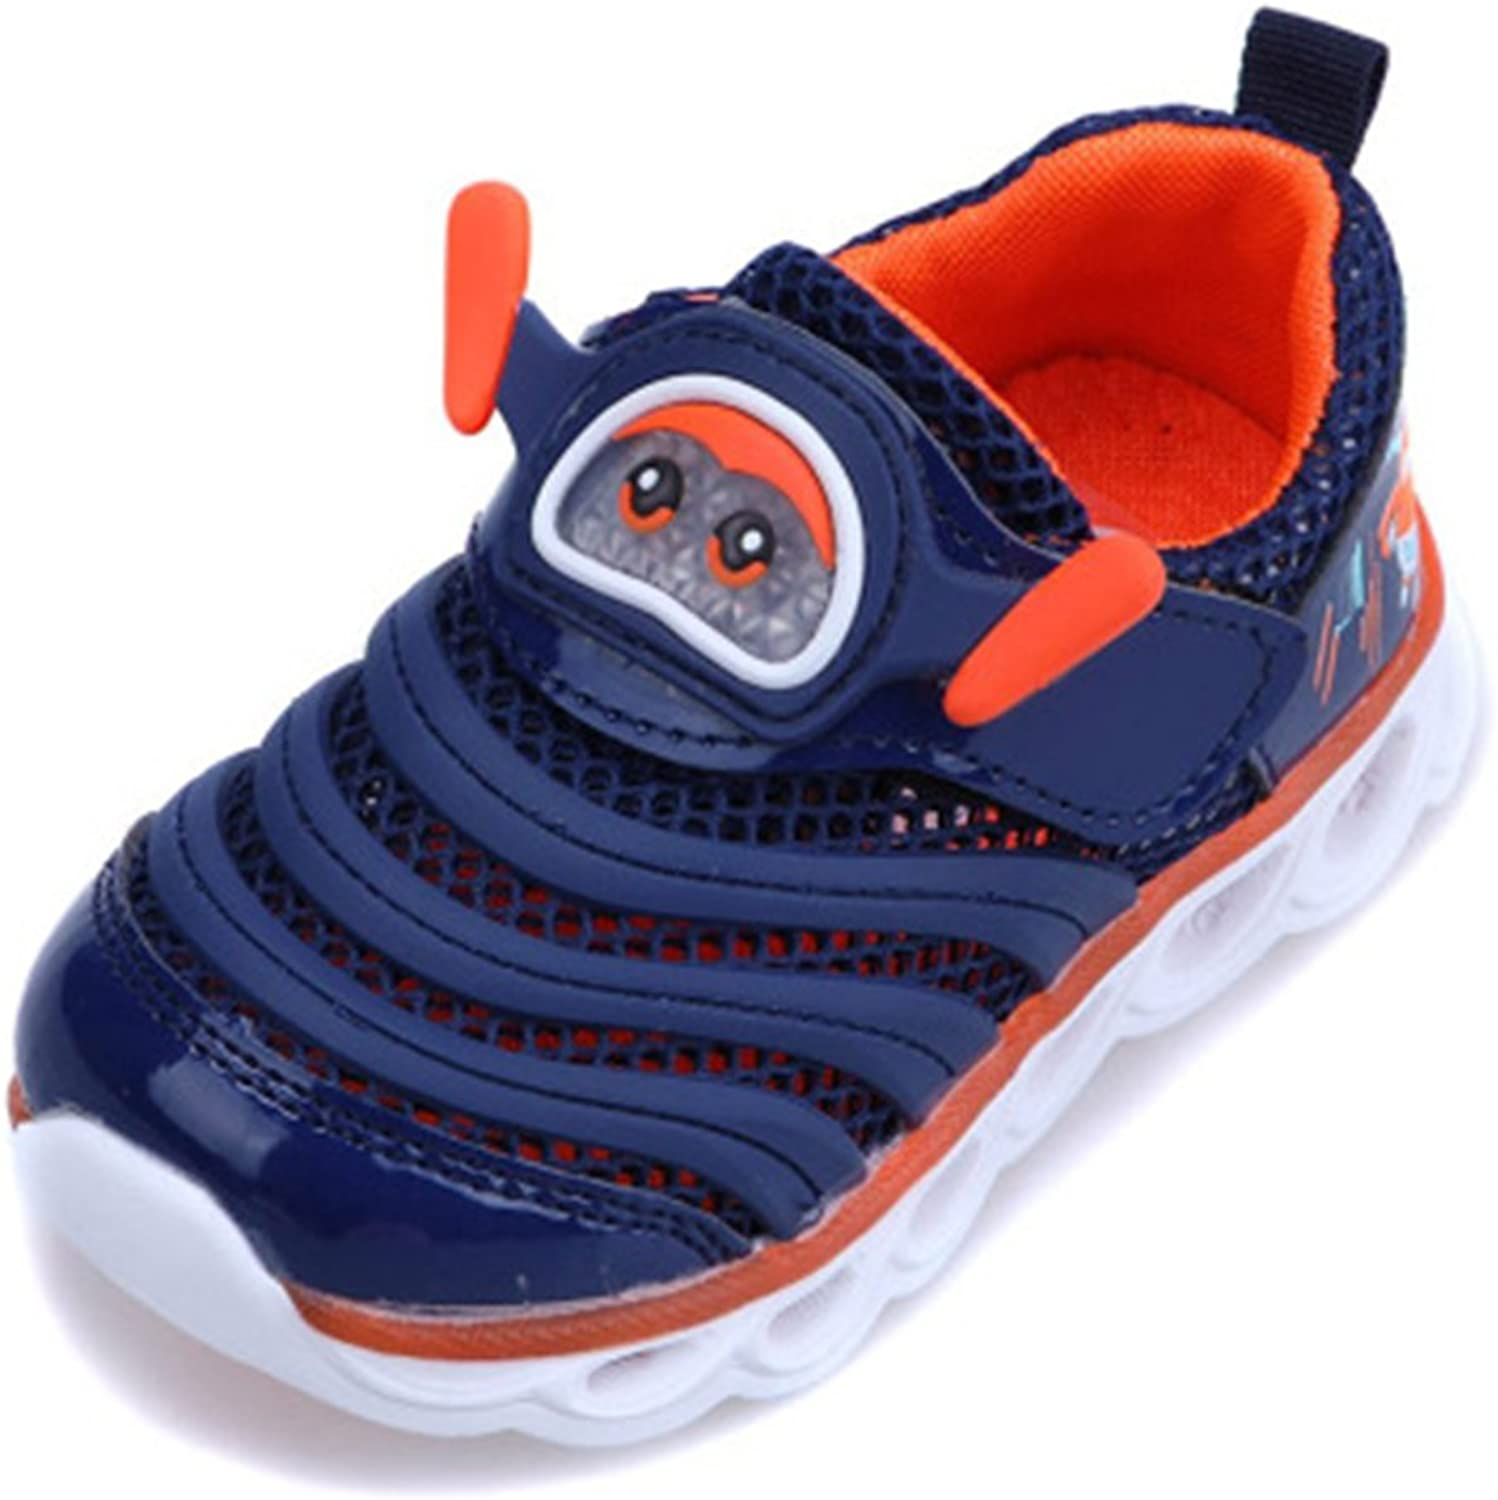 FORTUN Casual shoes, Comfortable Sneakers, NonSlip shoes,mesh Running shoes